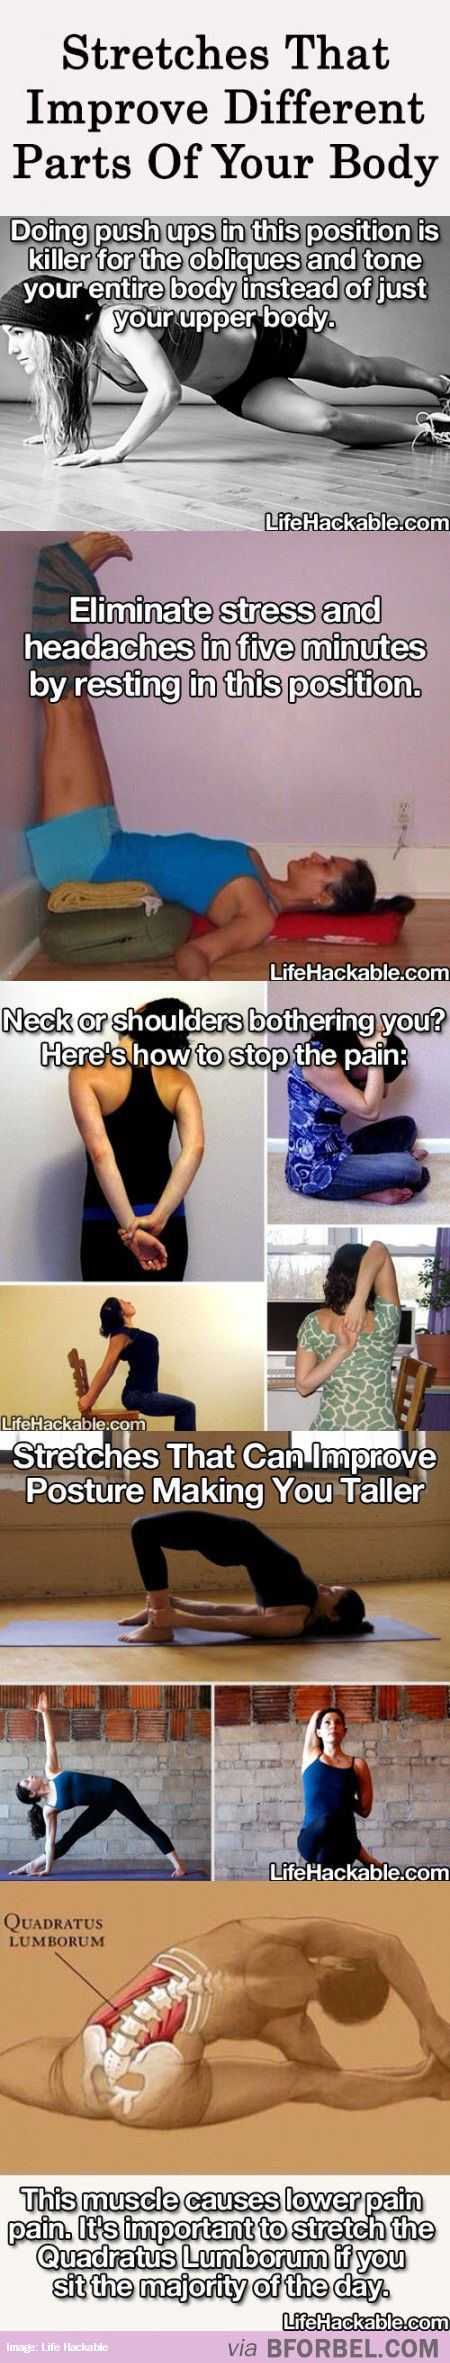 Types Of Stretches That Improve Different Parts Of Your Body…